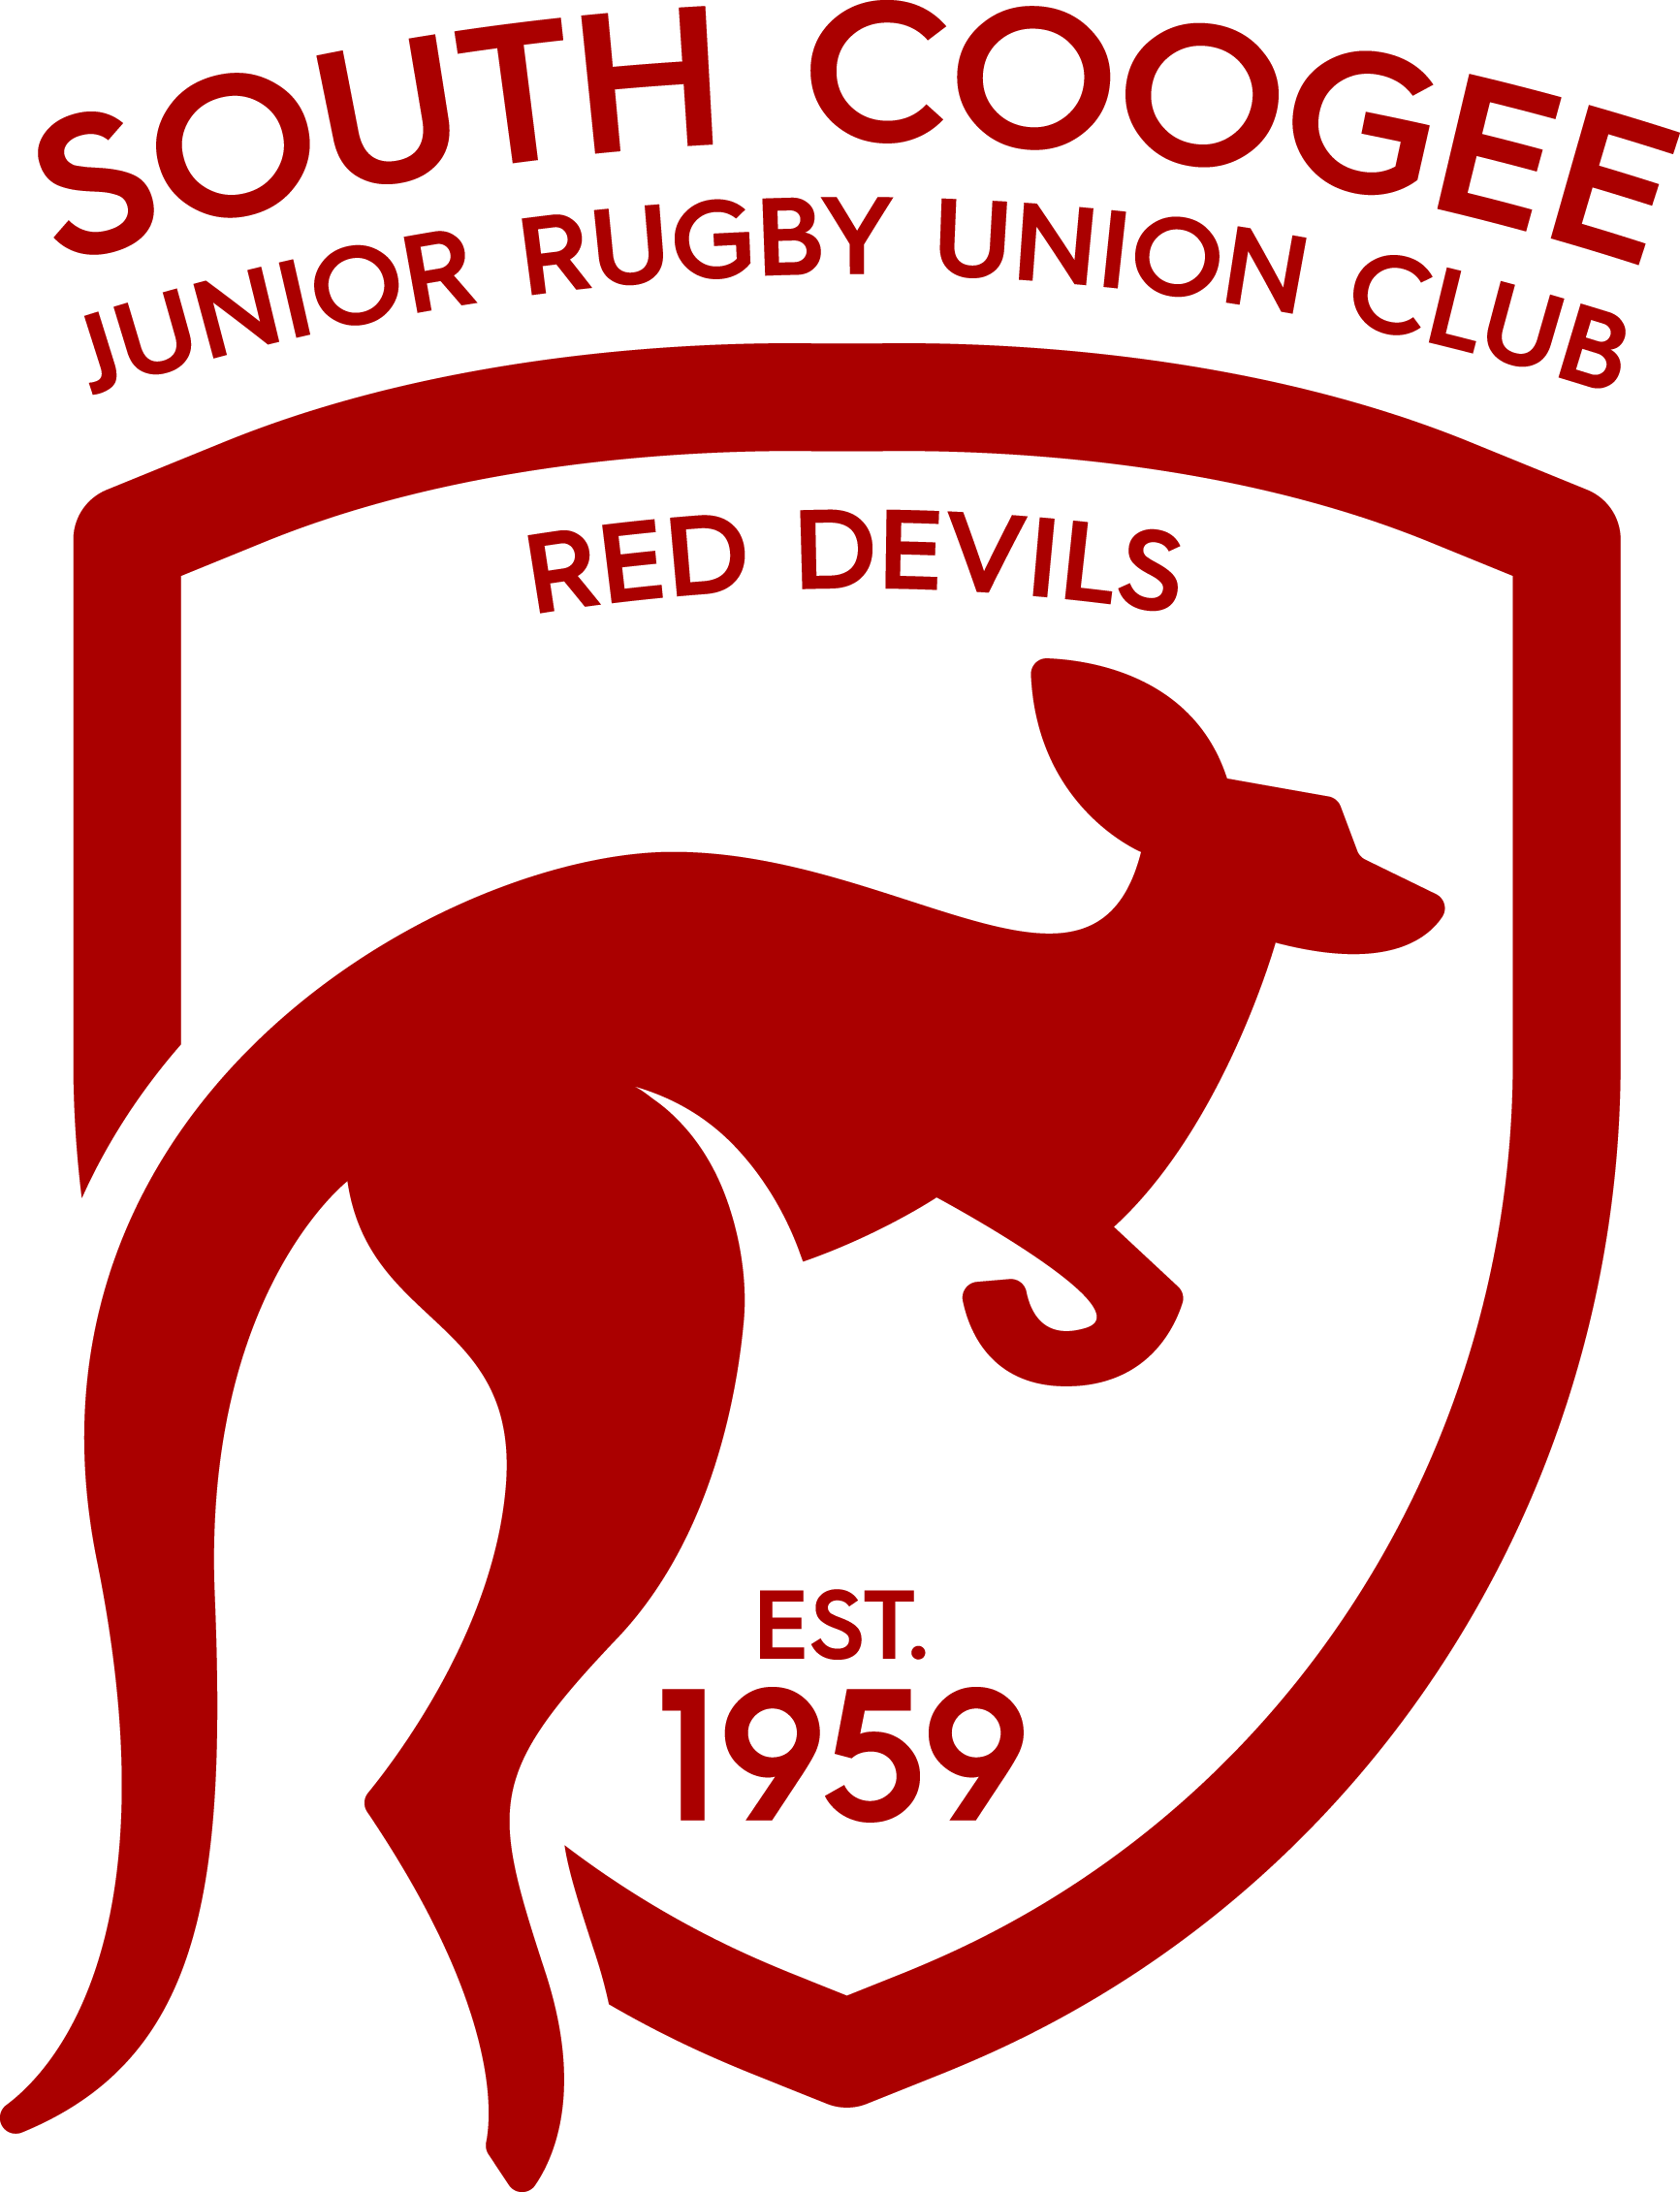 South Coogee Red Devils.